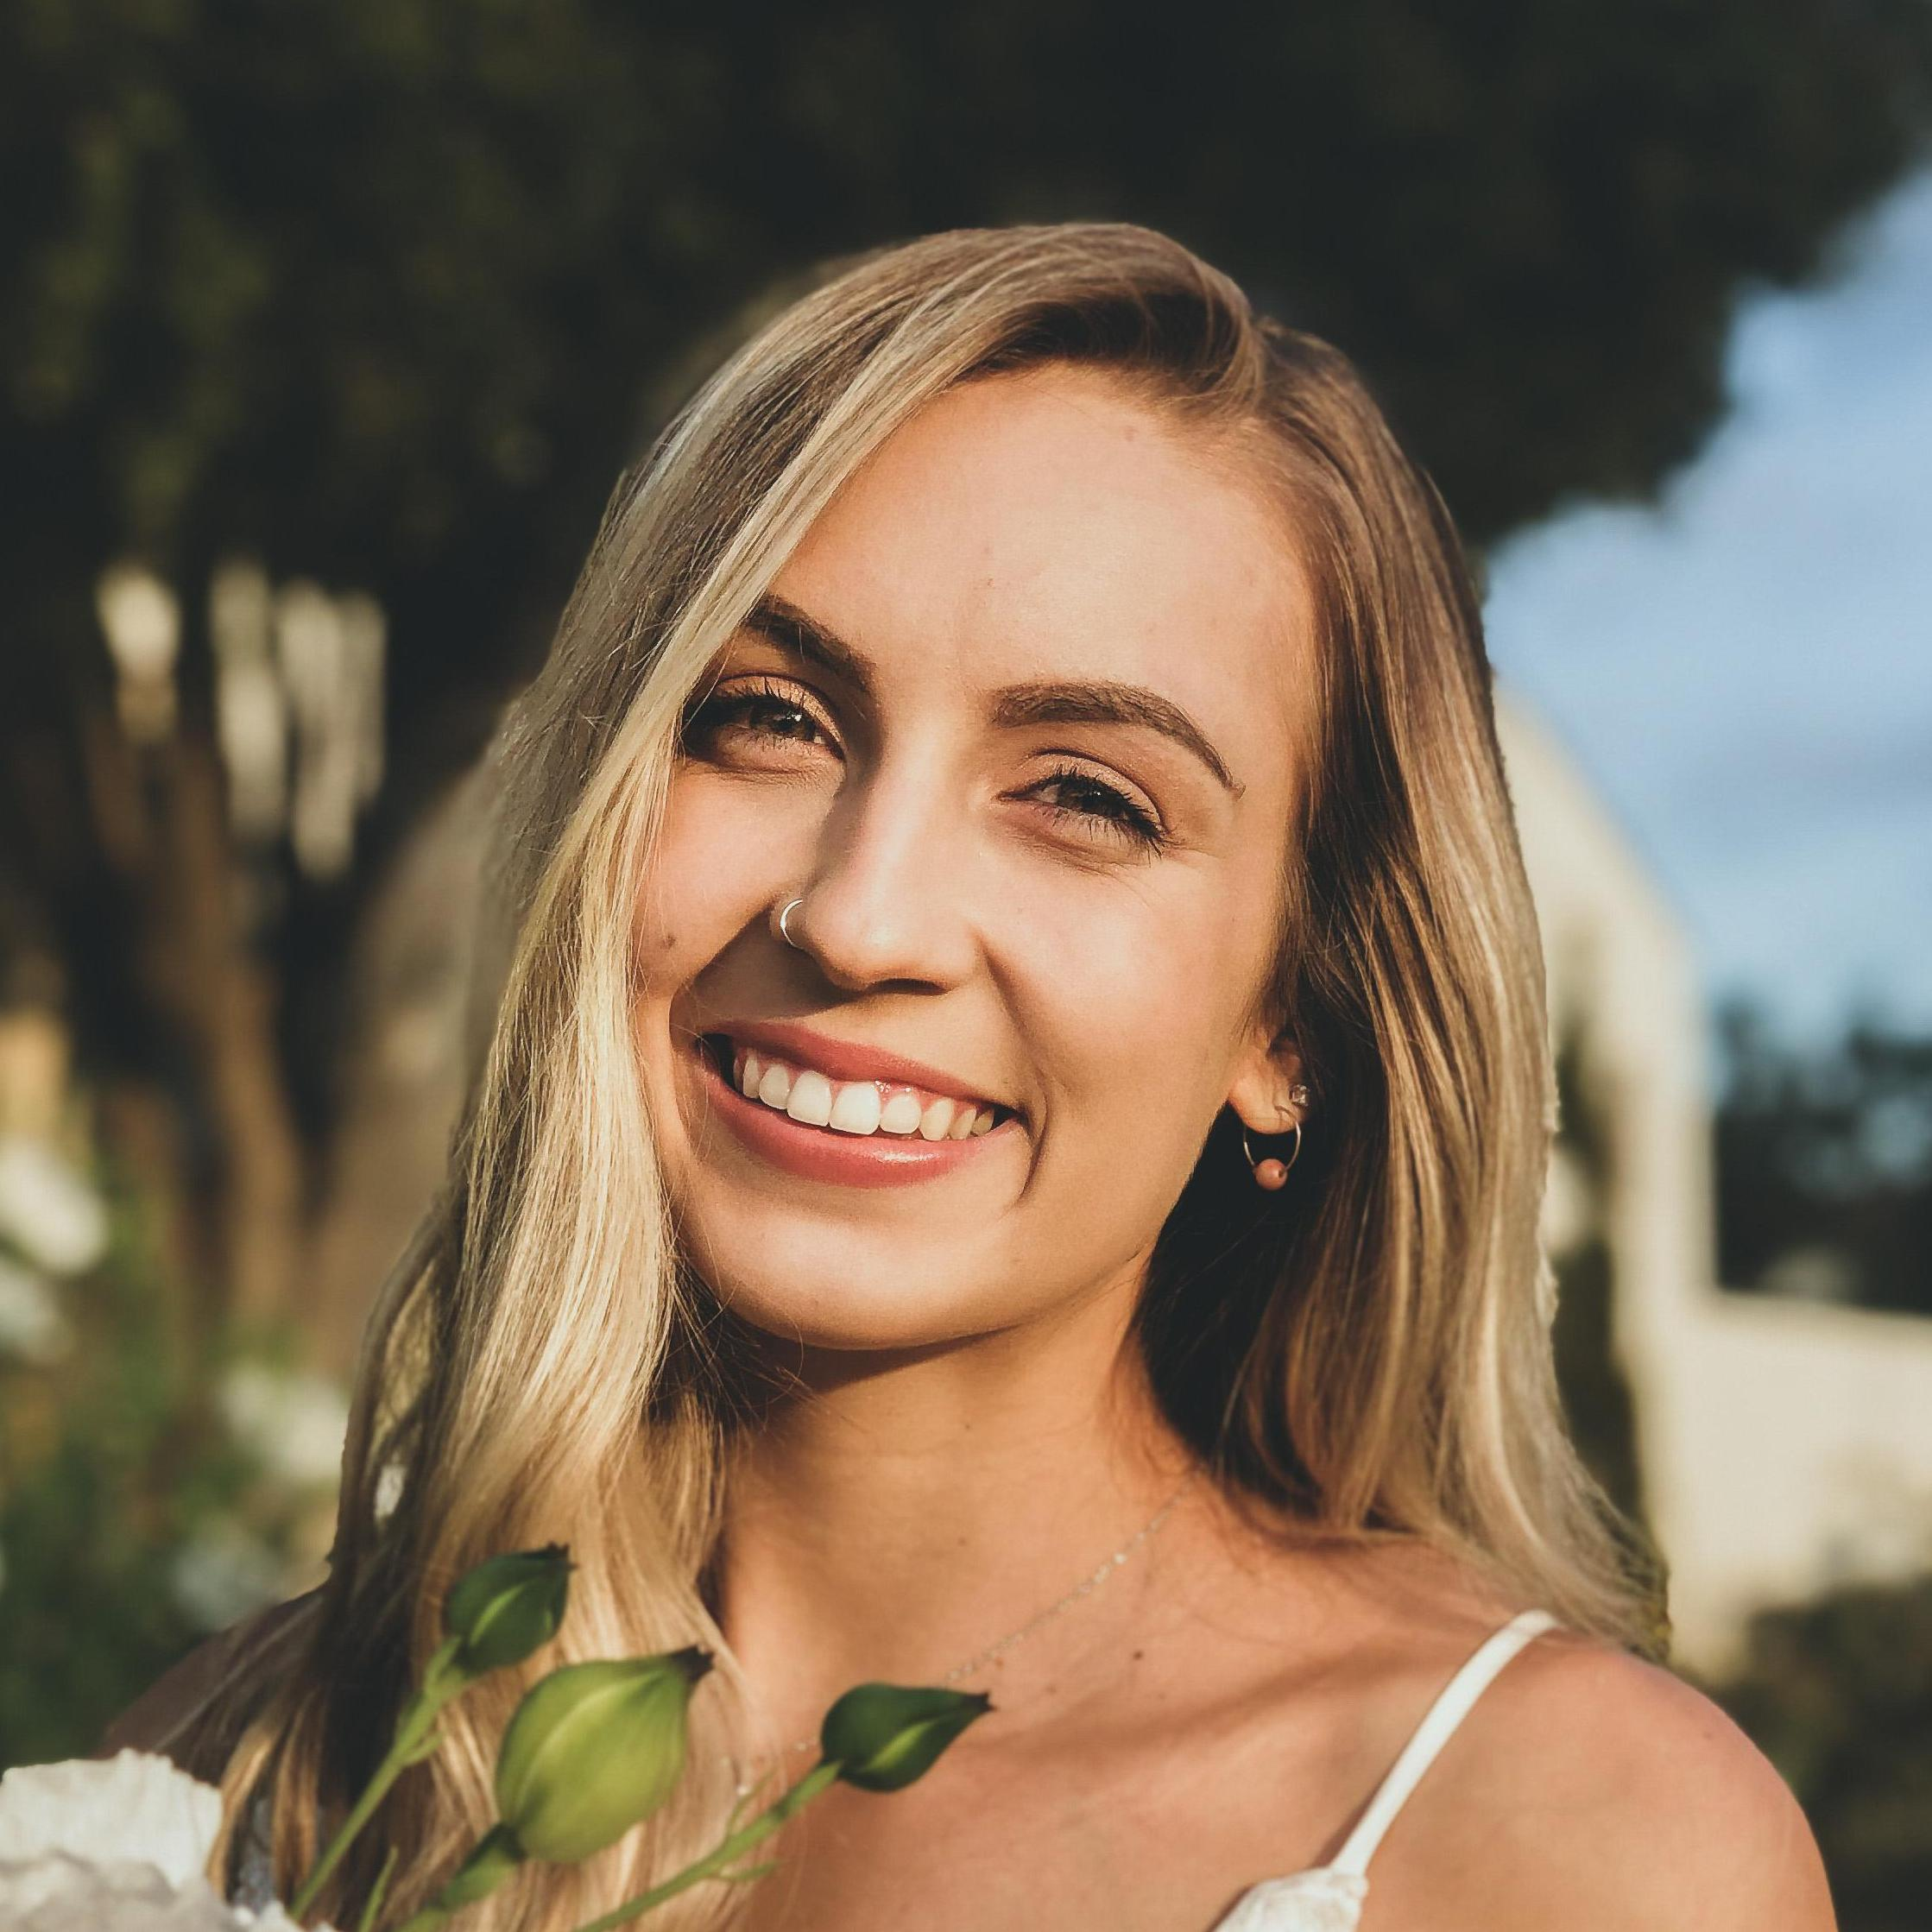 Sophia Pertusati's Profile Photo